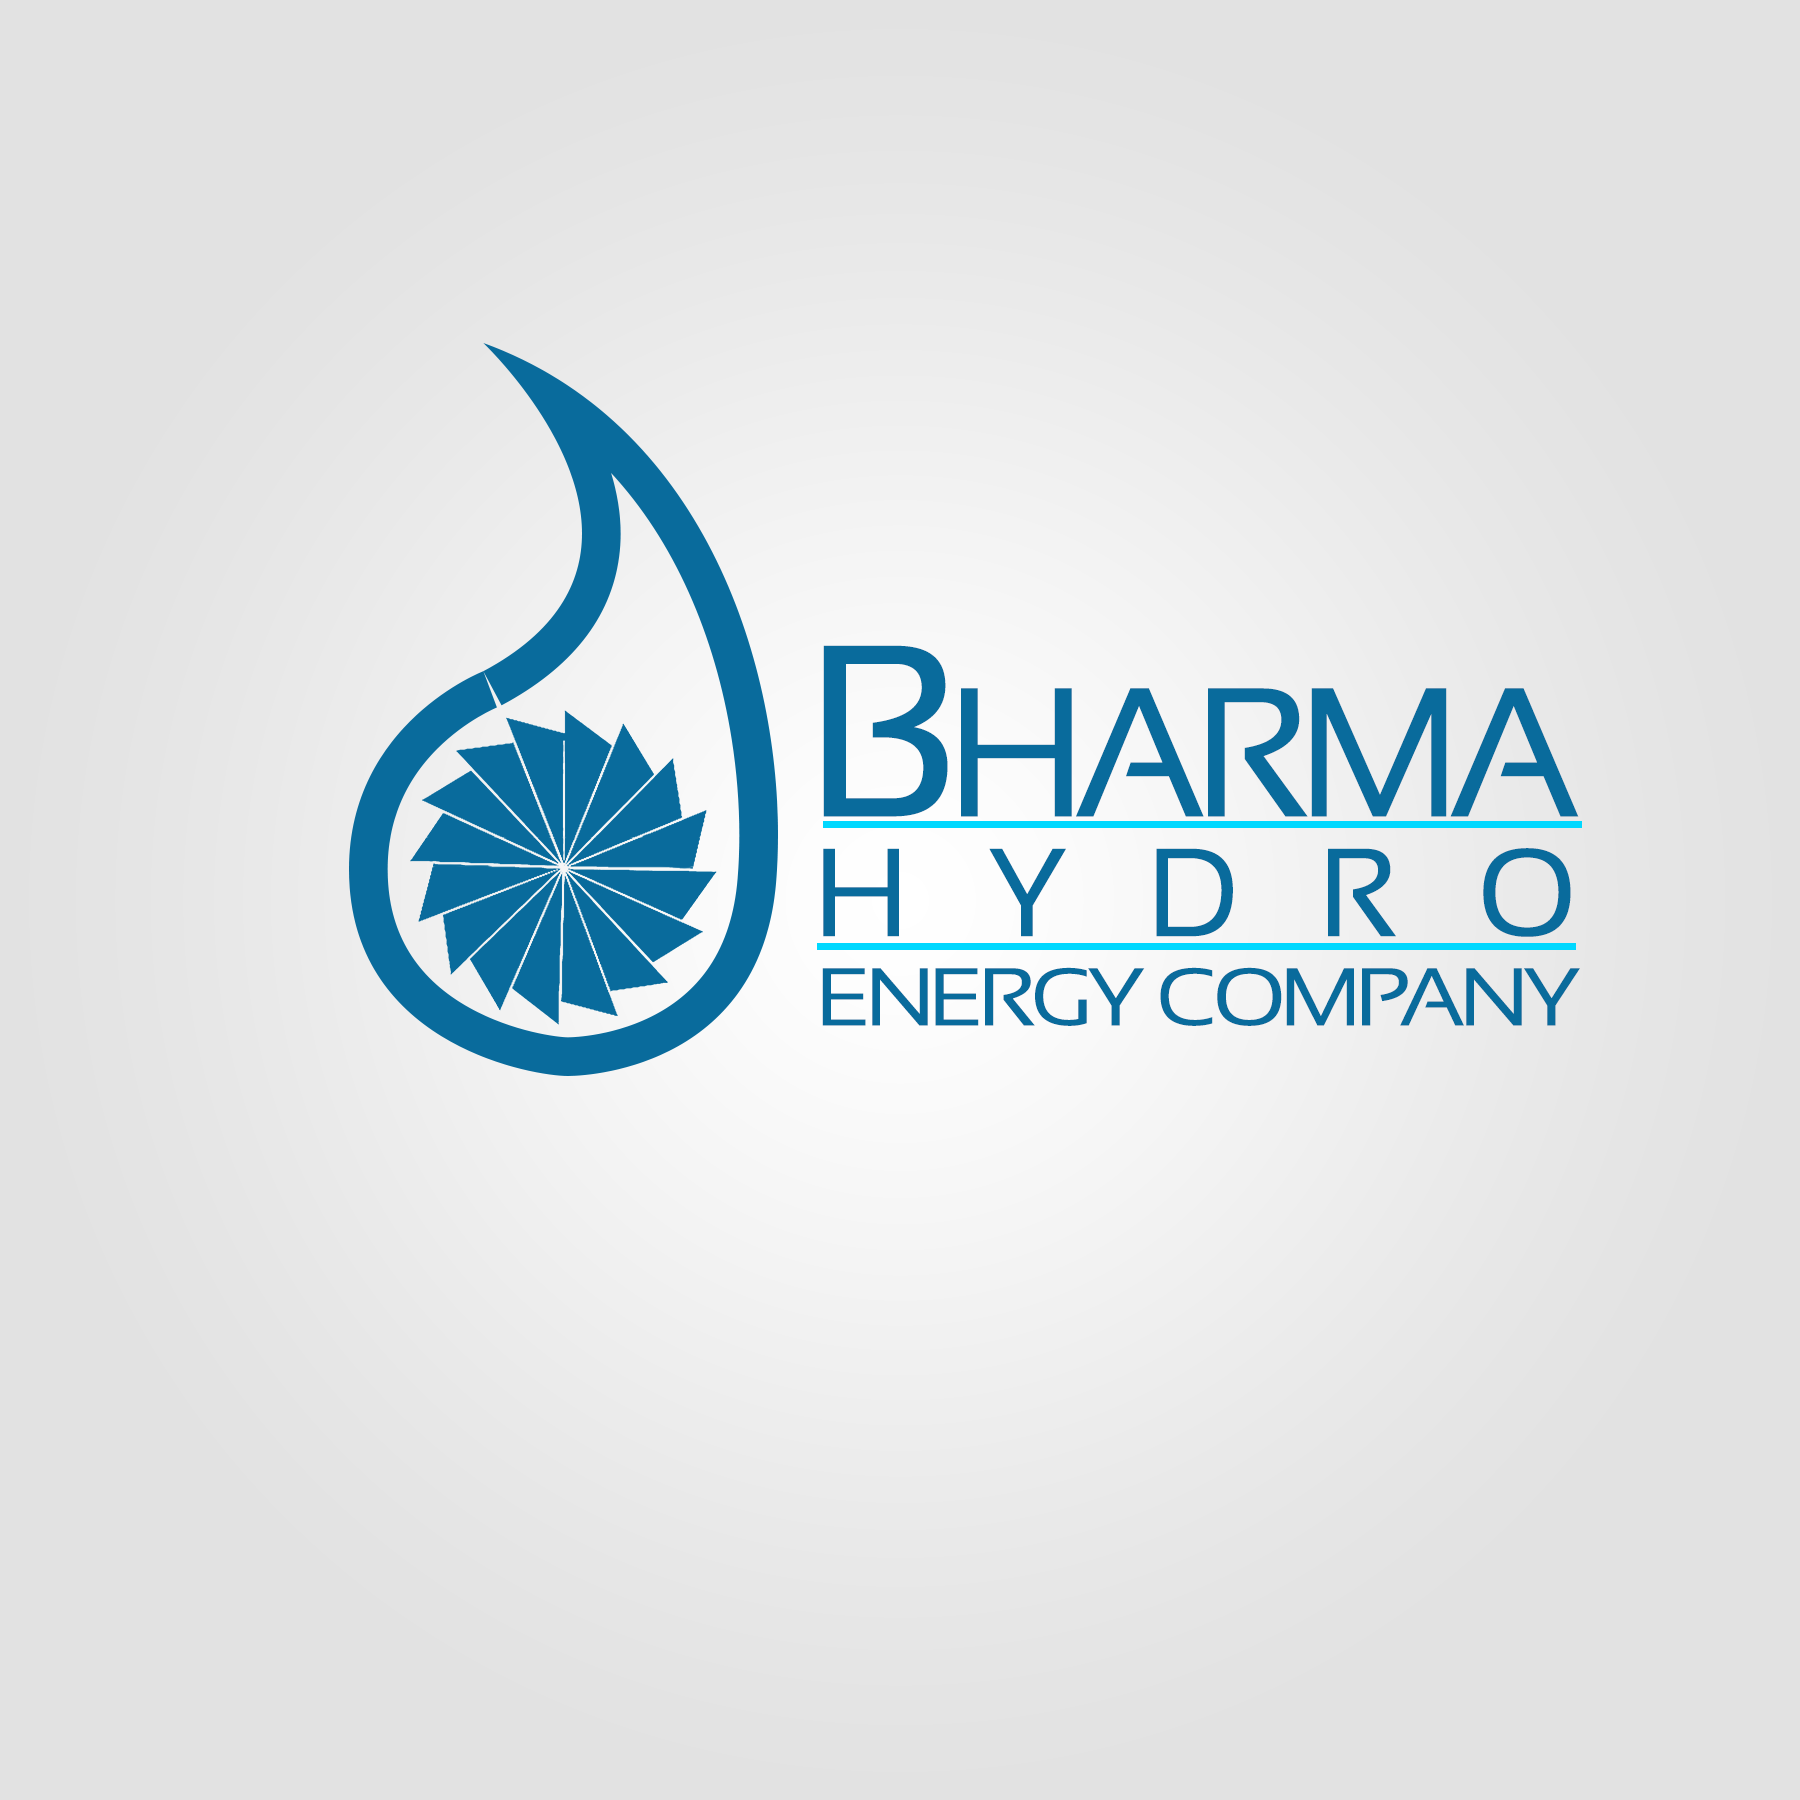 Logo Design by Lemuel Arvin Tanzo - Entry No. 19 in the Logo Design Contest Creative Logo Design for Bharma Hydro.